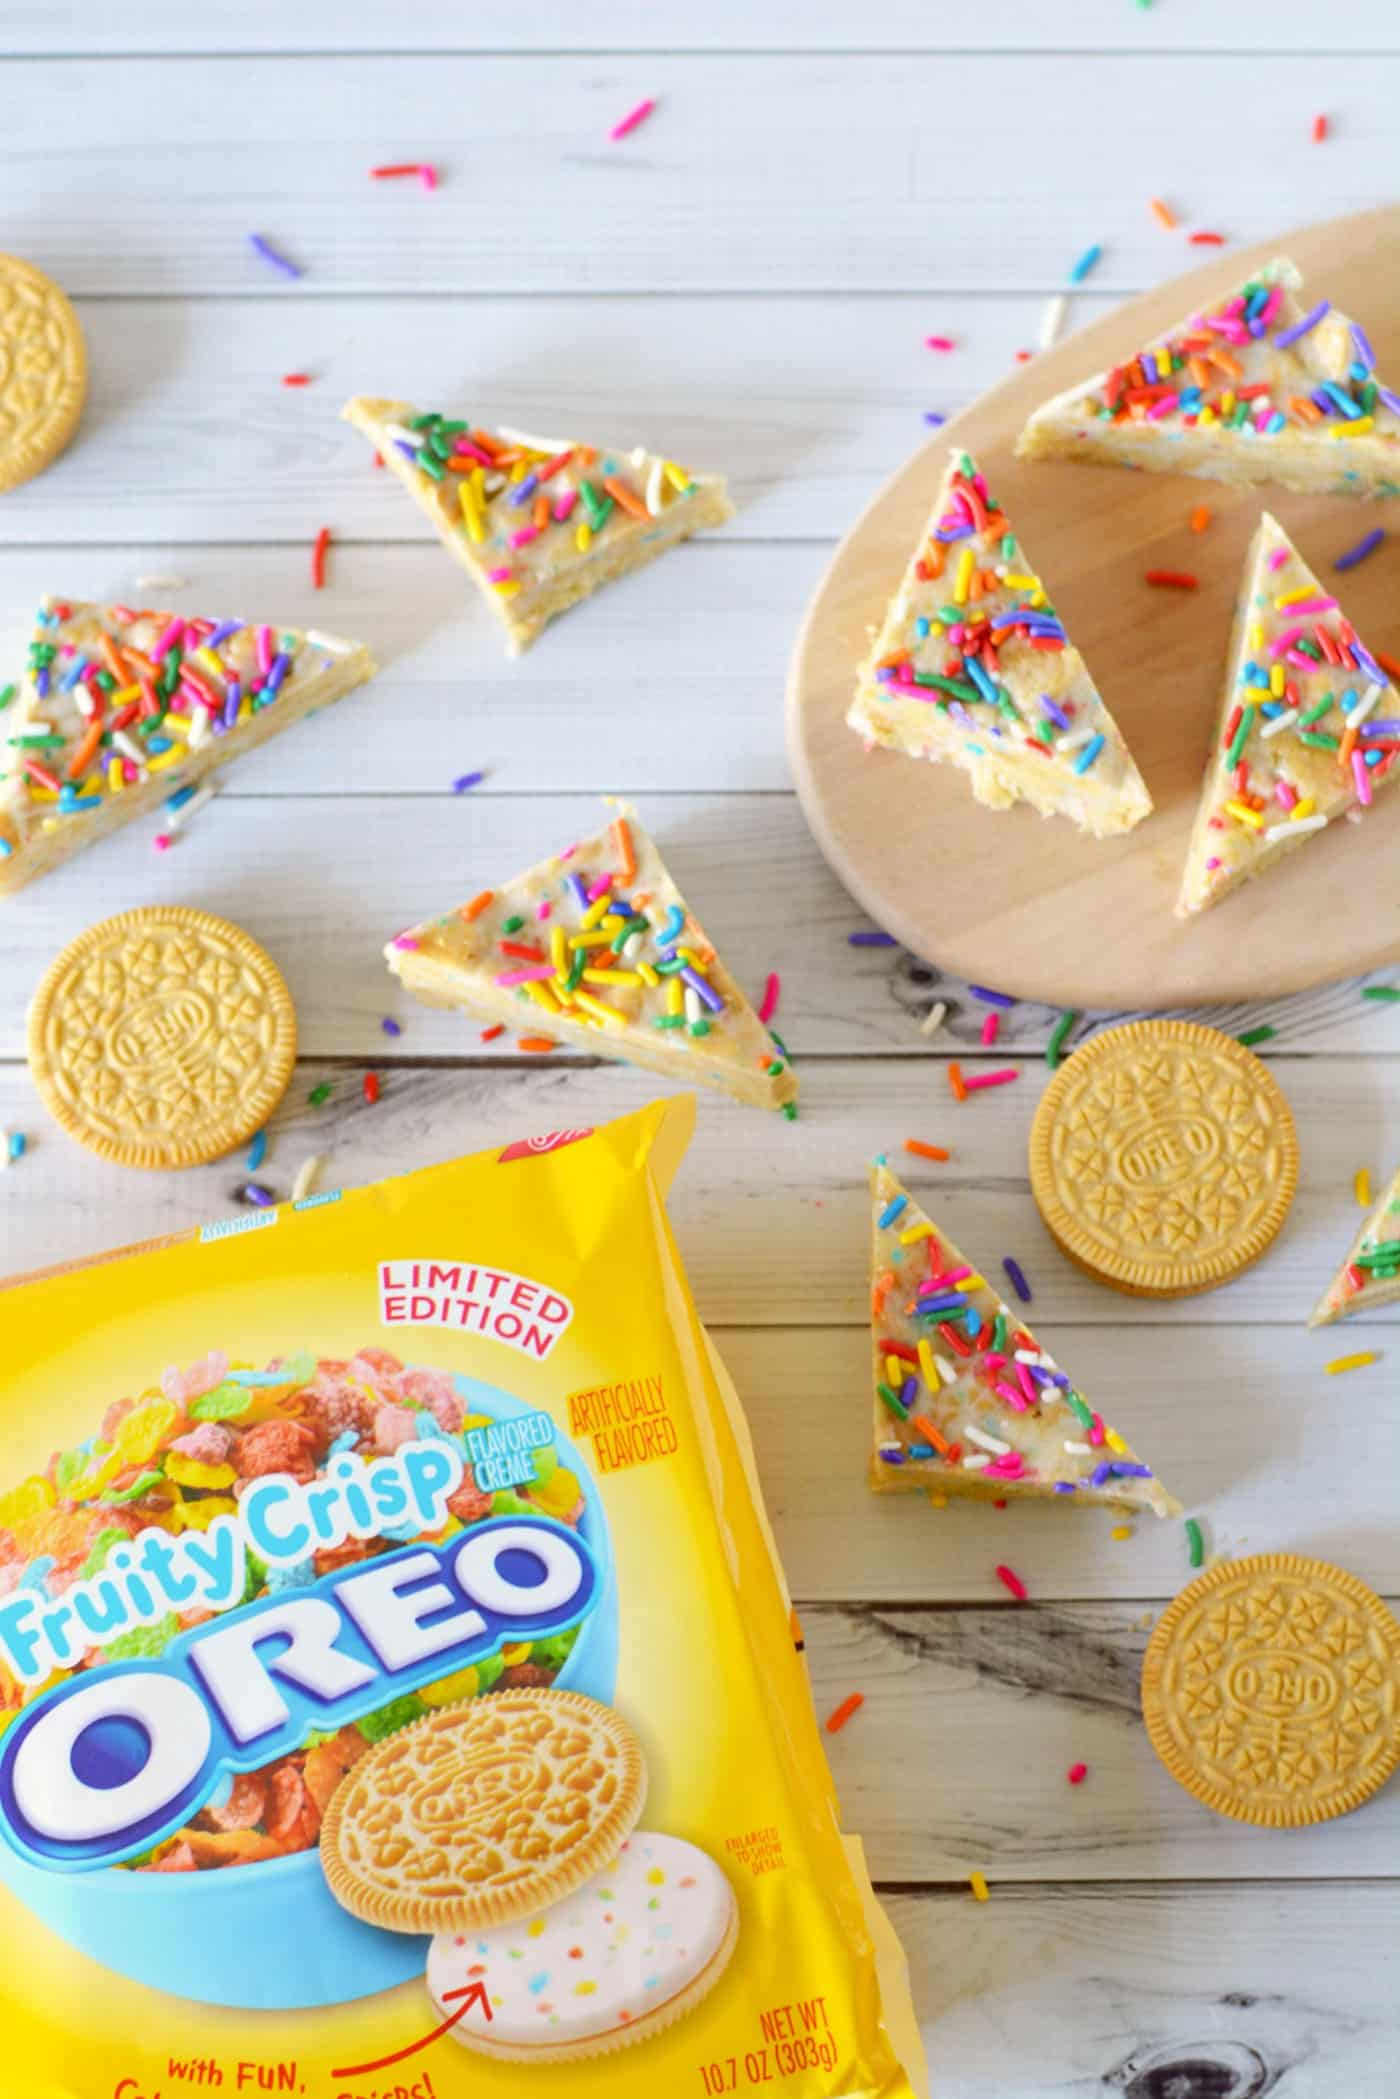 This Oreo dessert features delicious cereal bits that taste just like Fruity Pebbles! Easy to make because it's no bake - your kids will love these.